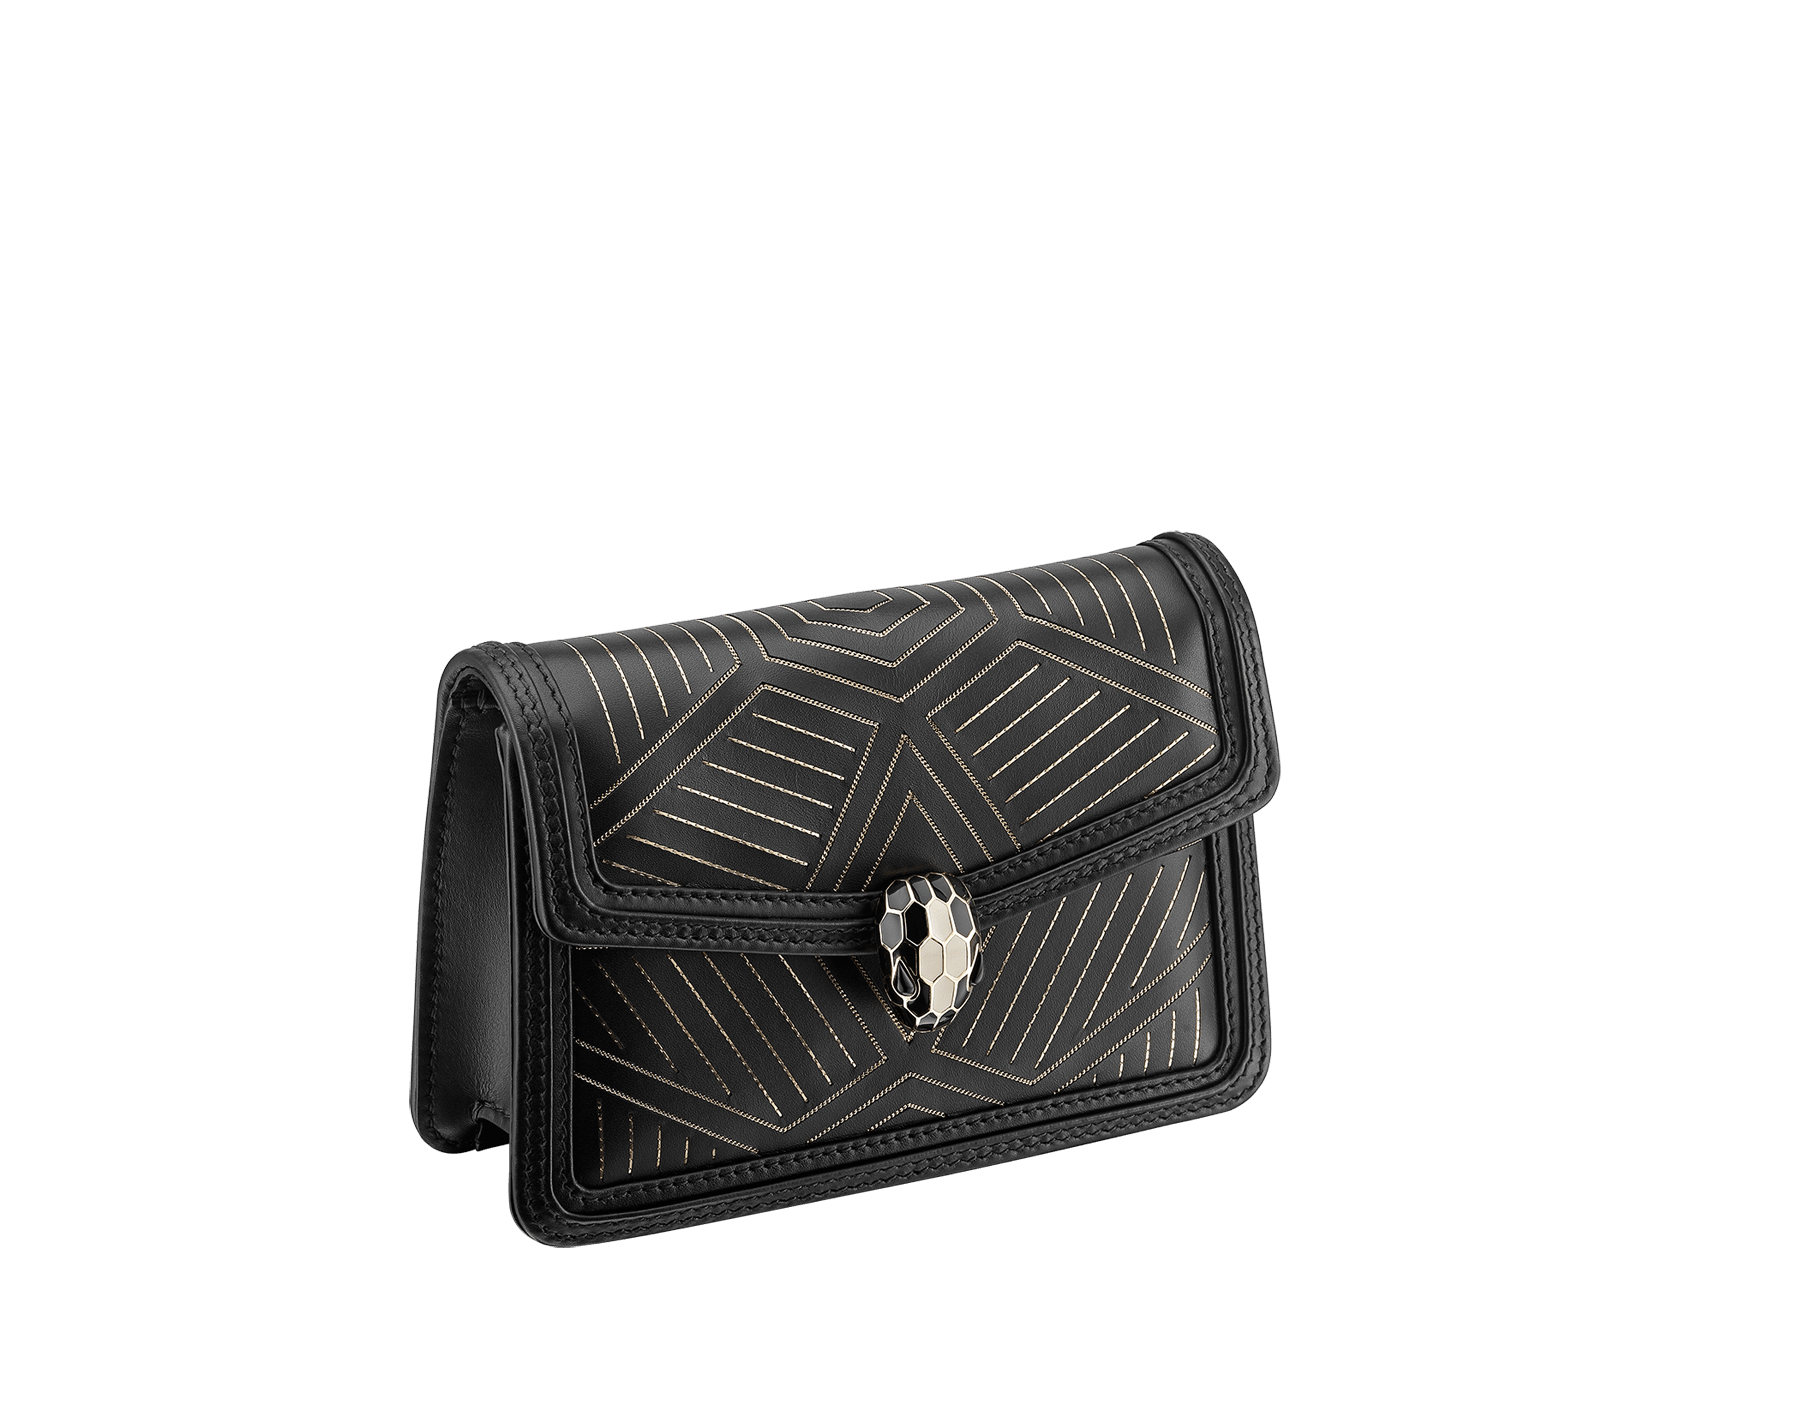 """Serpenti Diamond Blast"" shoulder bag in white agate calf leather, featuring a Whispy Chain motif in light gold finishing. Iconic snakehead closure in light gold-plated brass enriched with black and white agate enamel and black onyx eyes. 987-WC image 2"